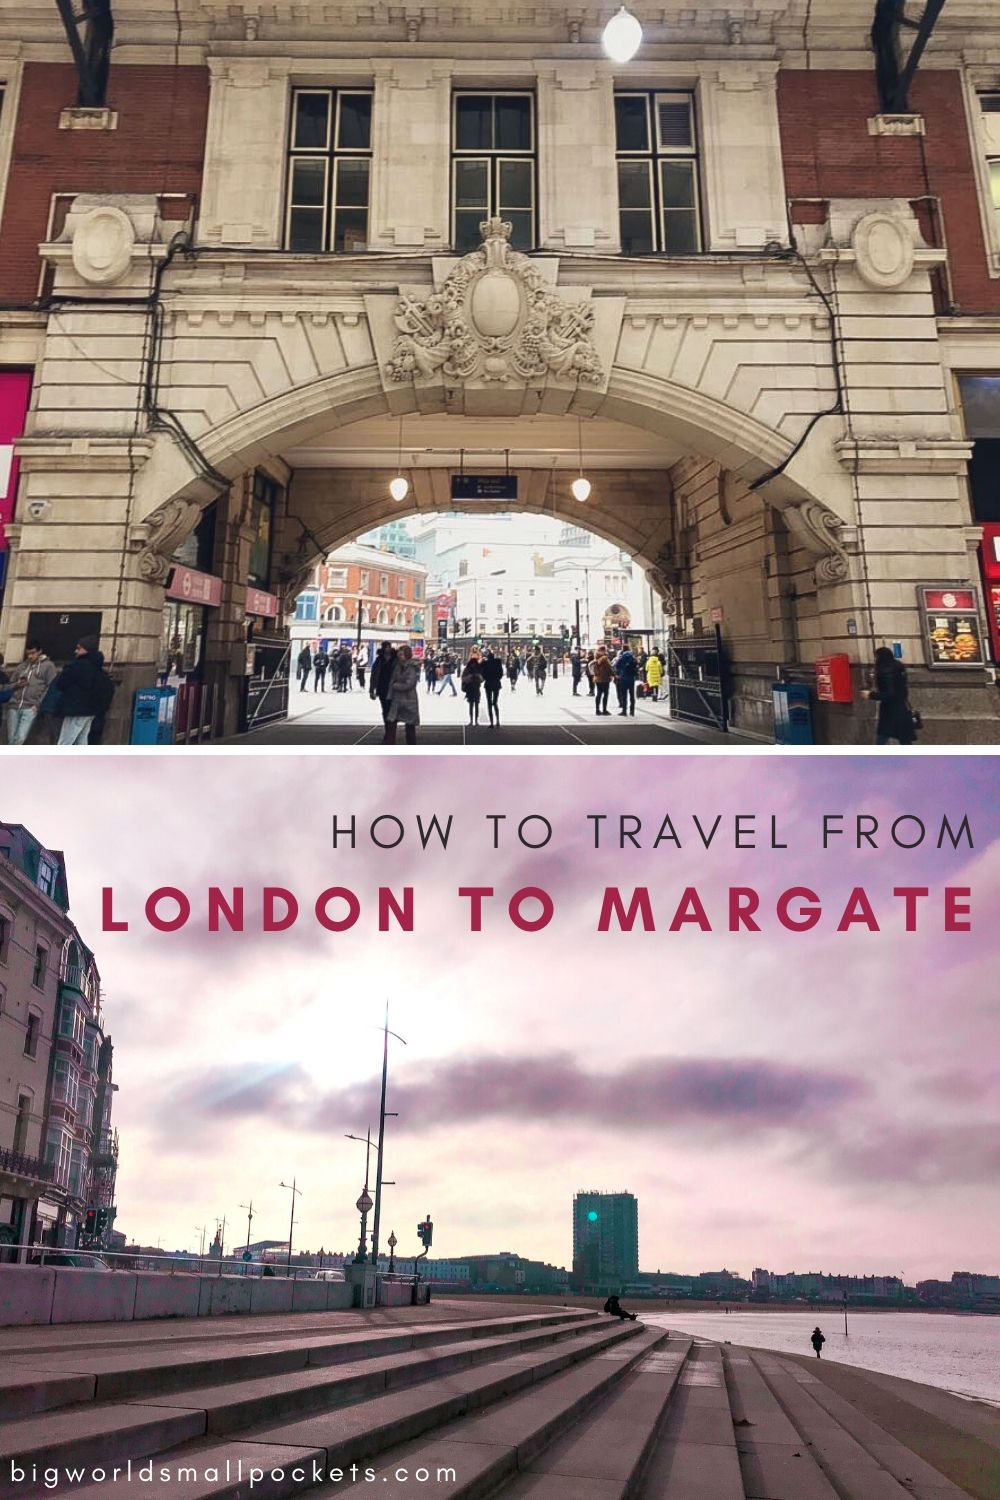 How To Travel From London to Margate By Train, Bus or Car